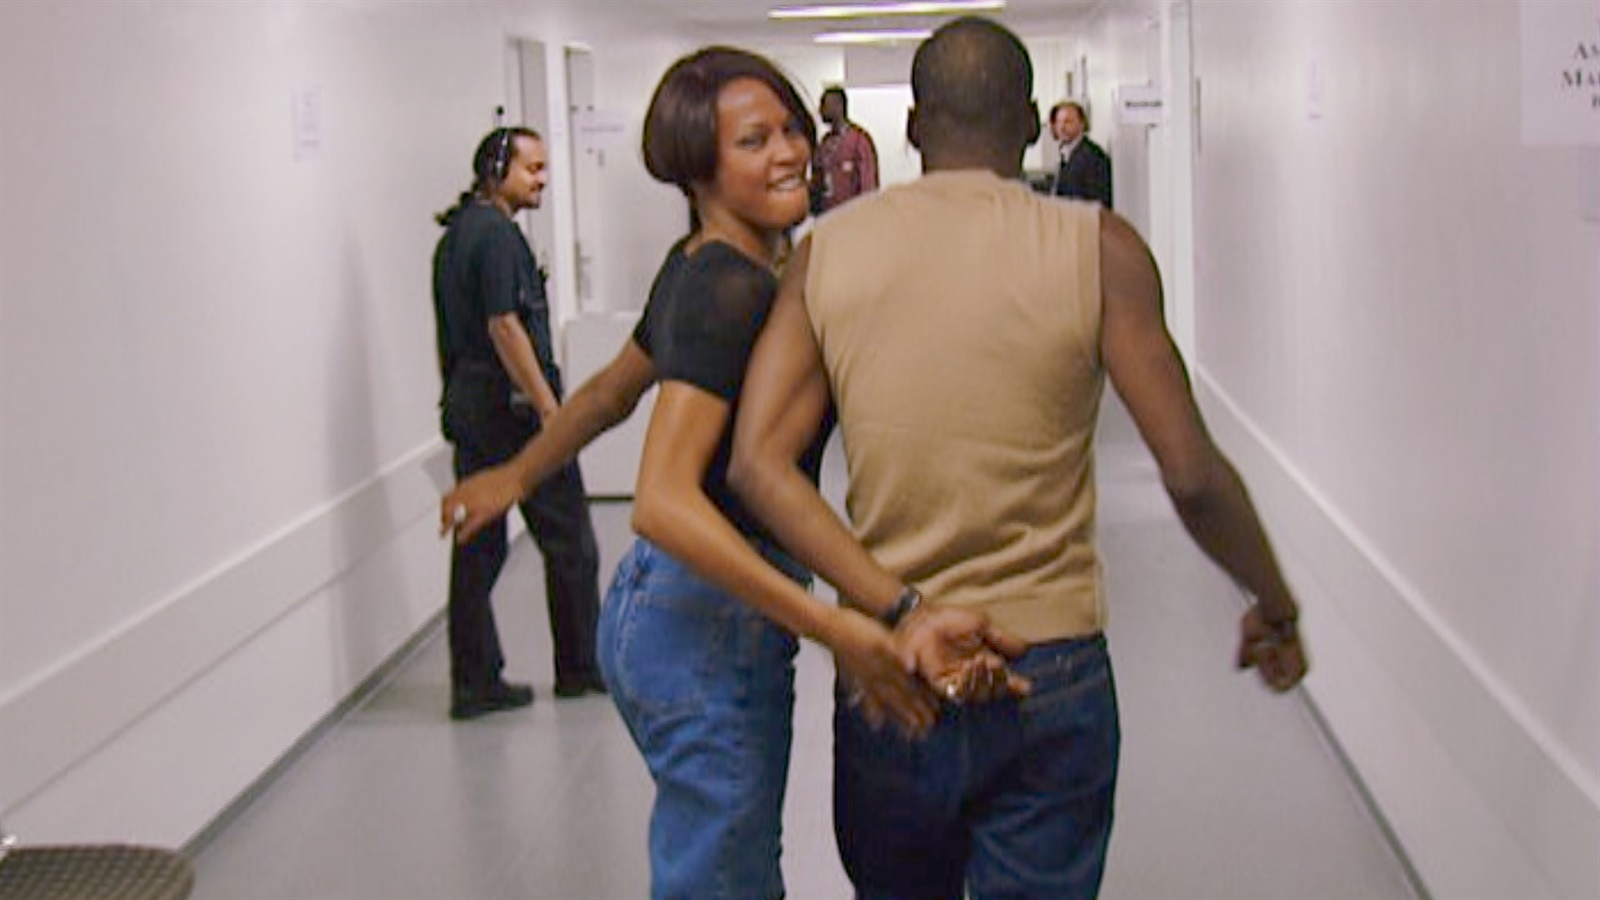 Houston with her husband, Bobby Brown, enjoying a funny, intimate moment. (Source: Google)